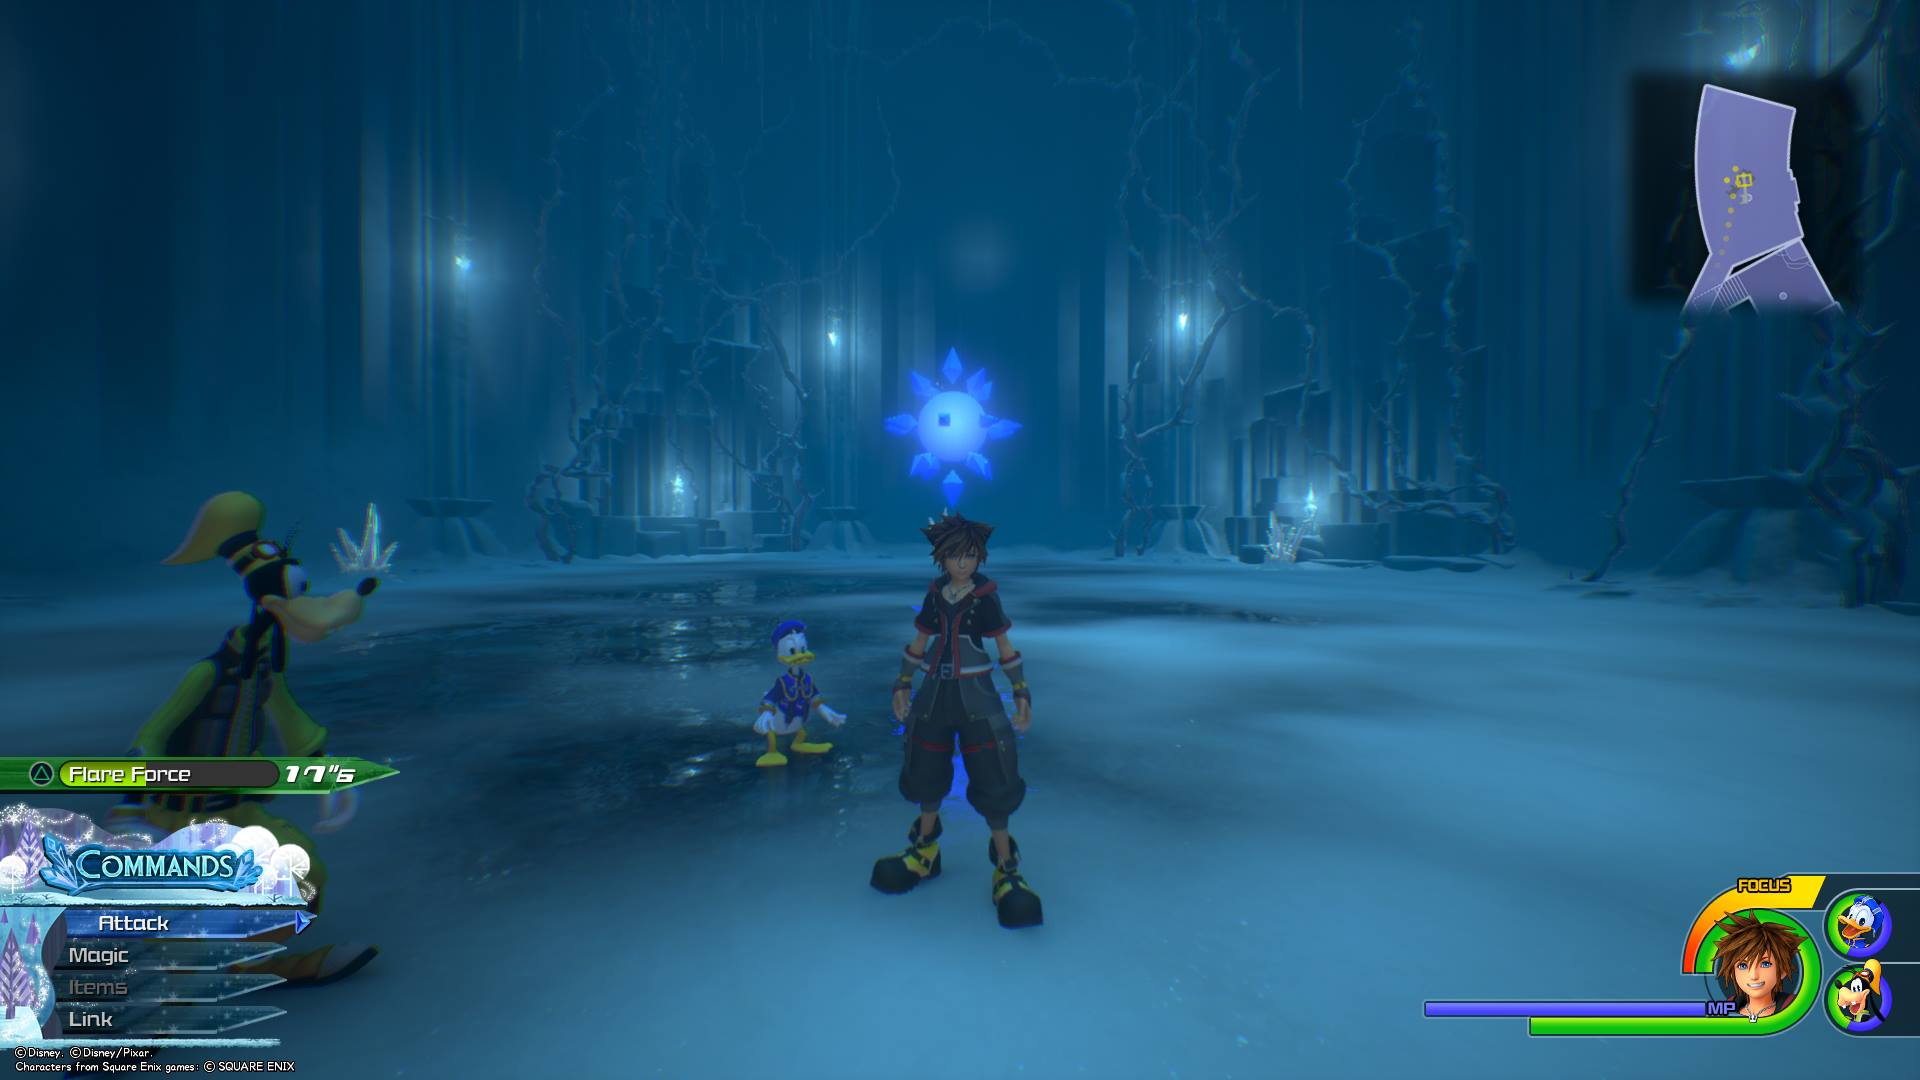 The ninth Battlegate in Kingdom Hearts 3 can be found in the Labyrinth area of Arendelle.